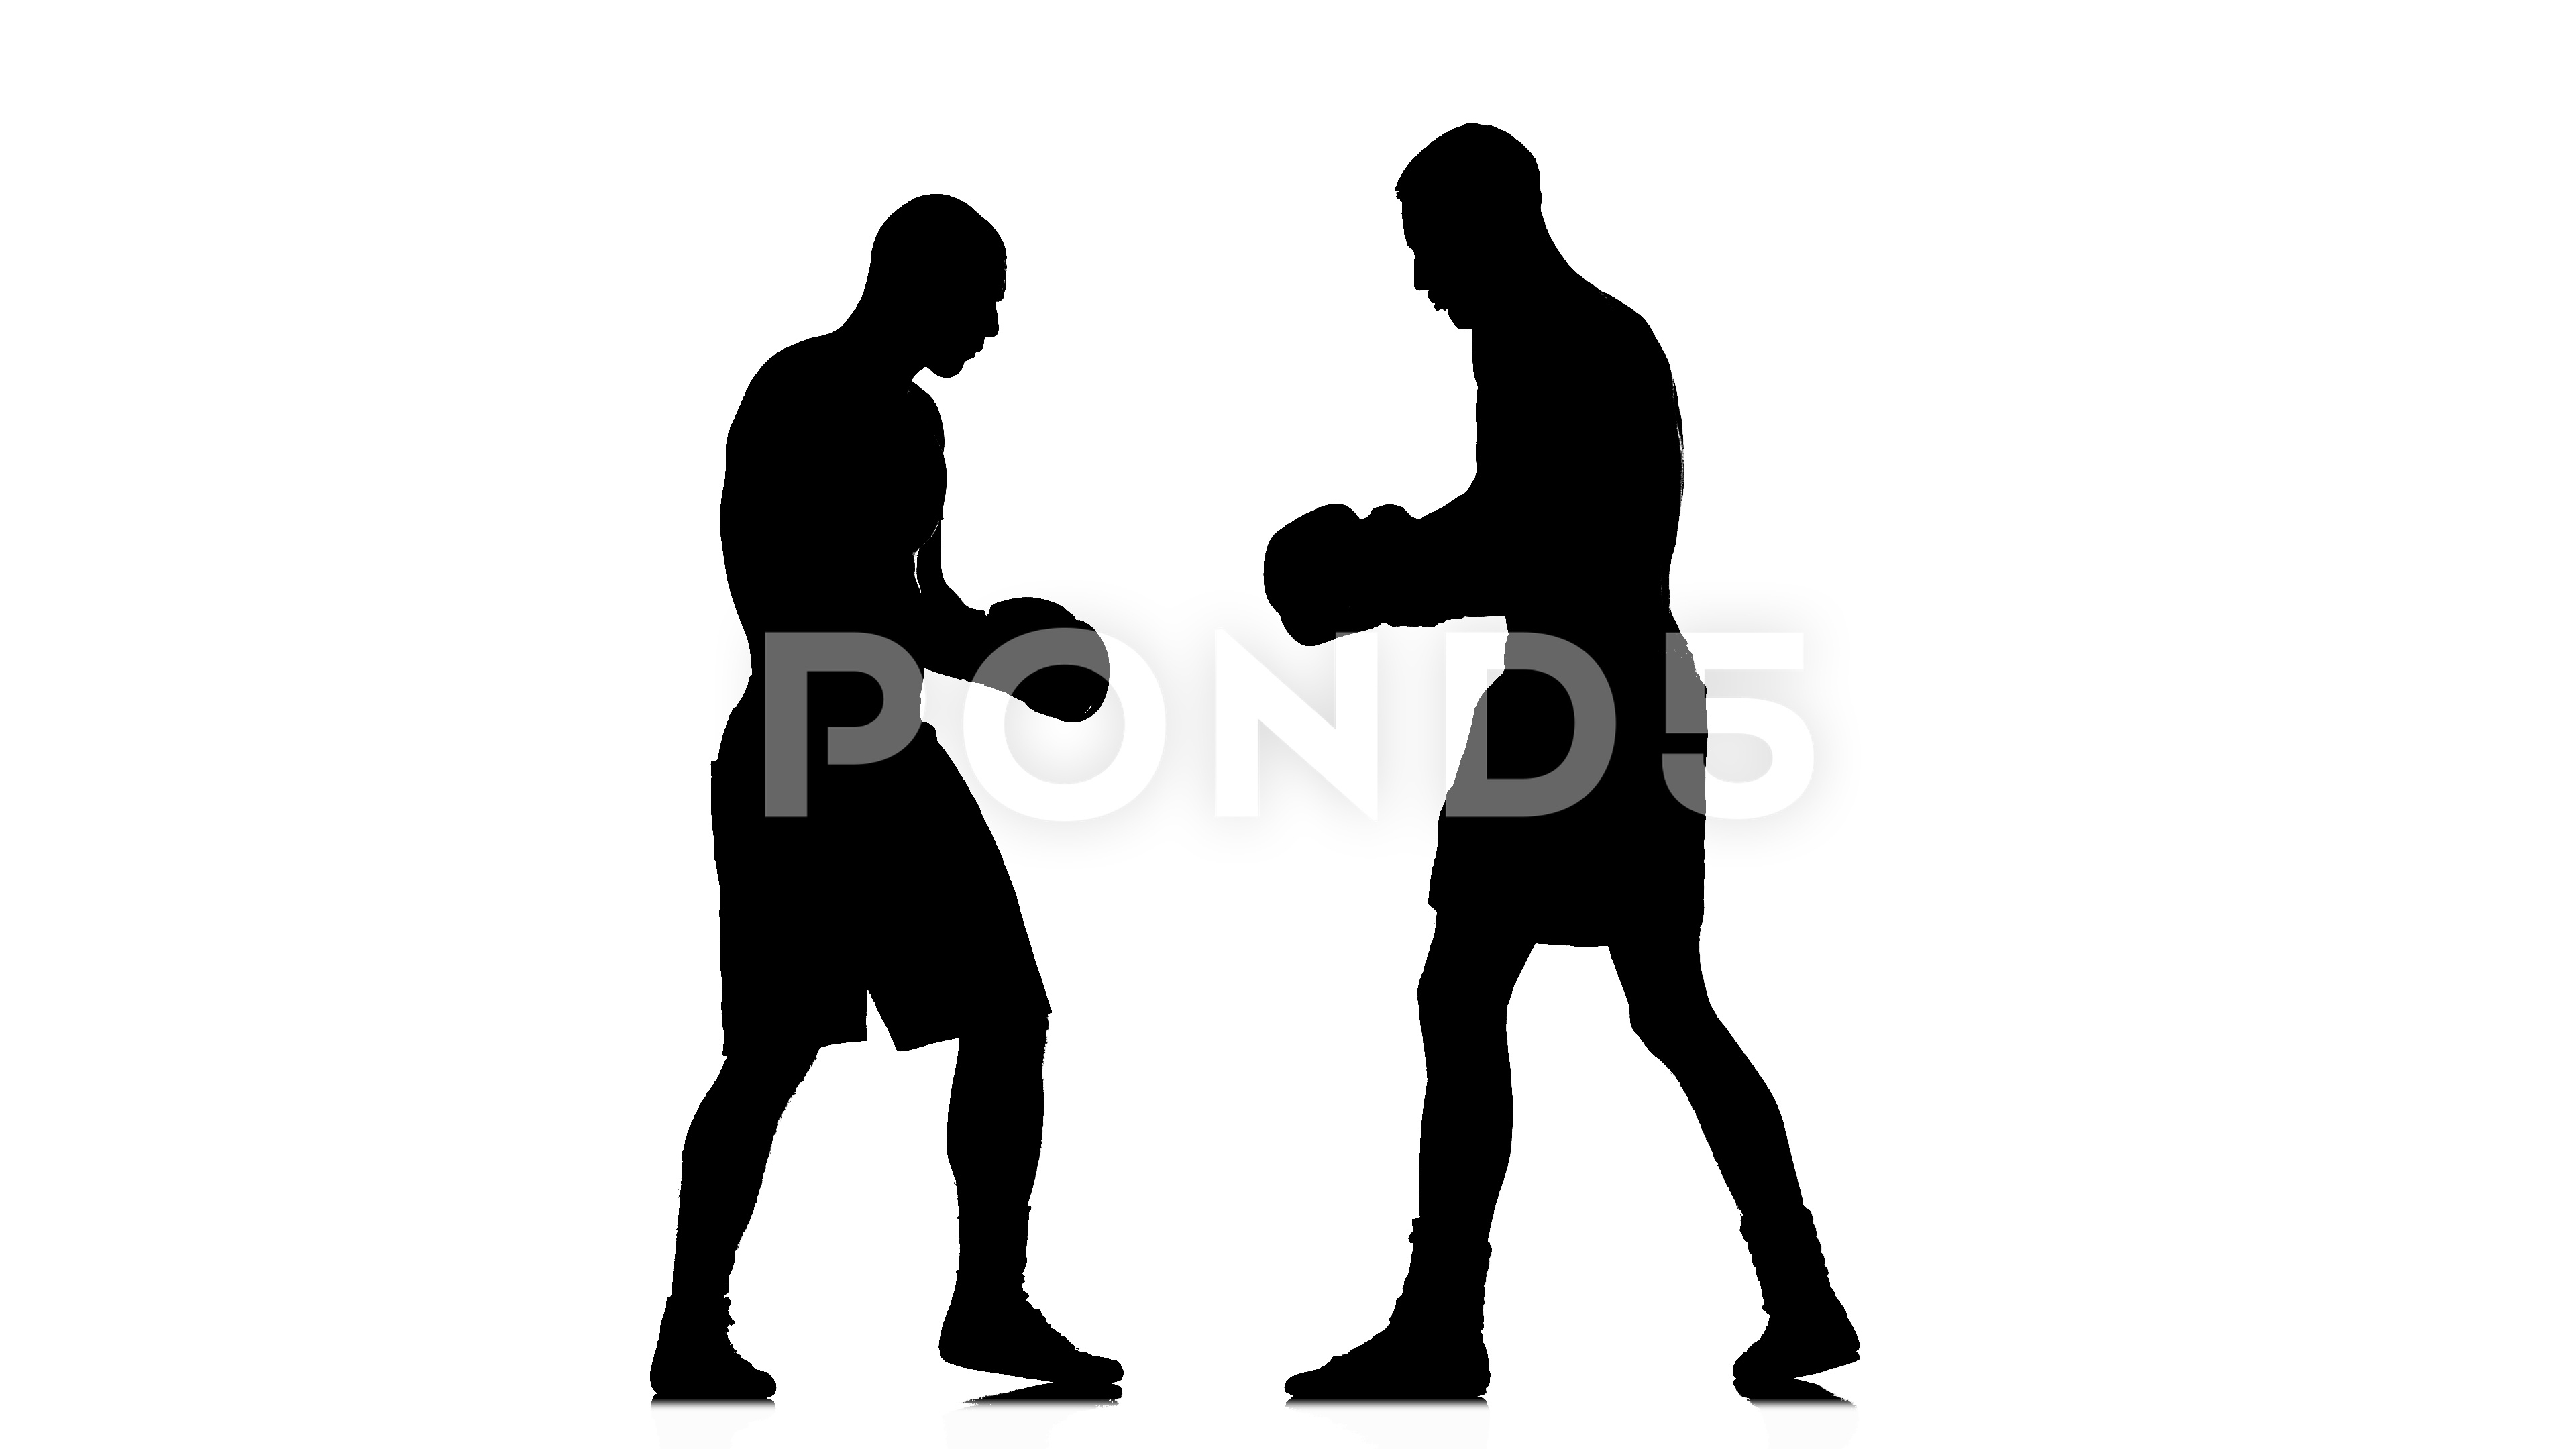 3840x2160 Intensive And Intense Fight Between Two Boxers. Black Silhouette